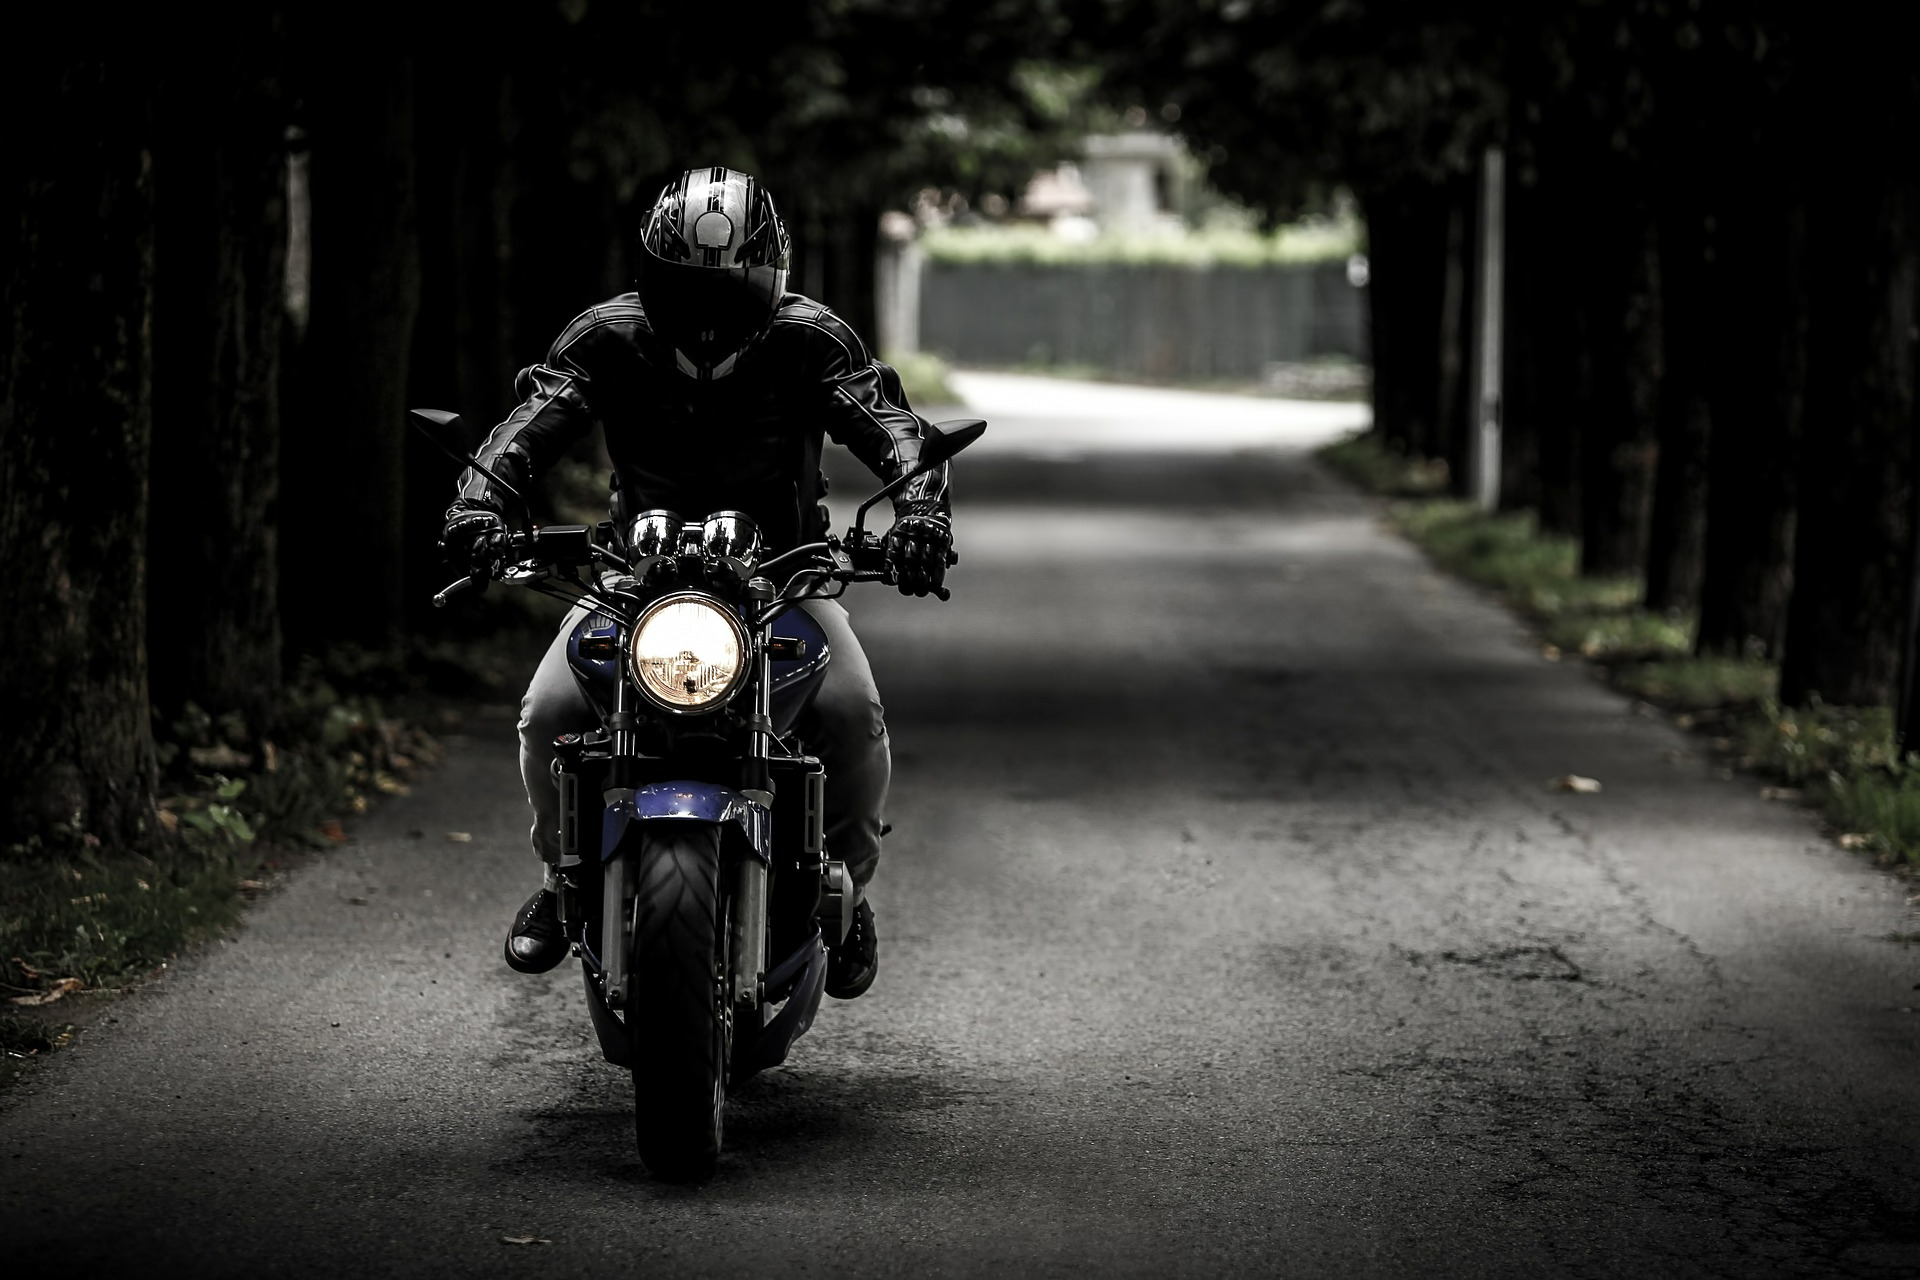 Biker on a wooded lane